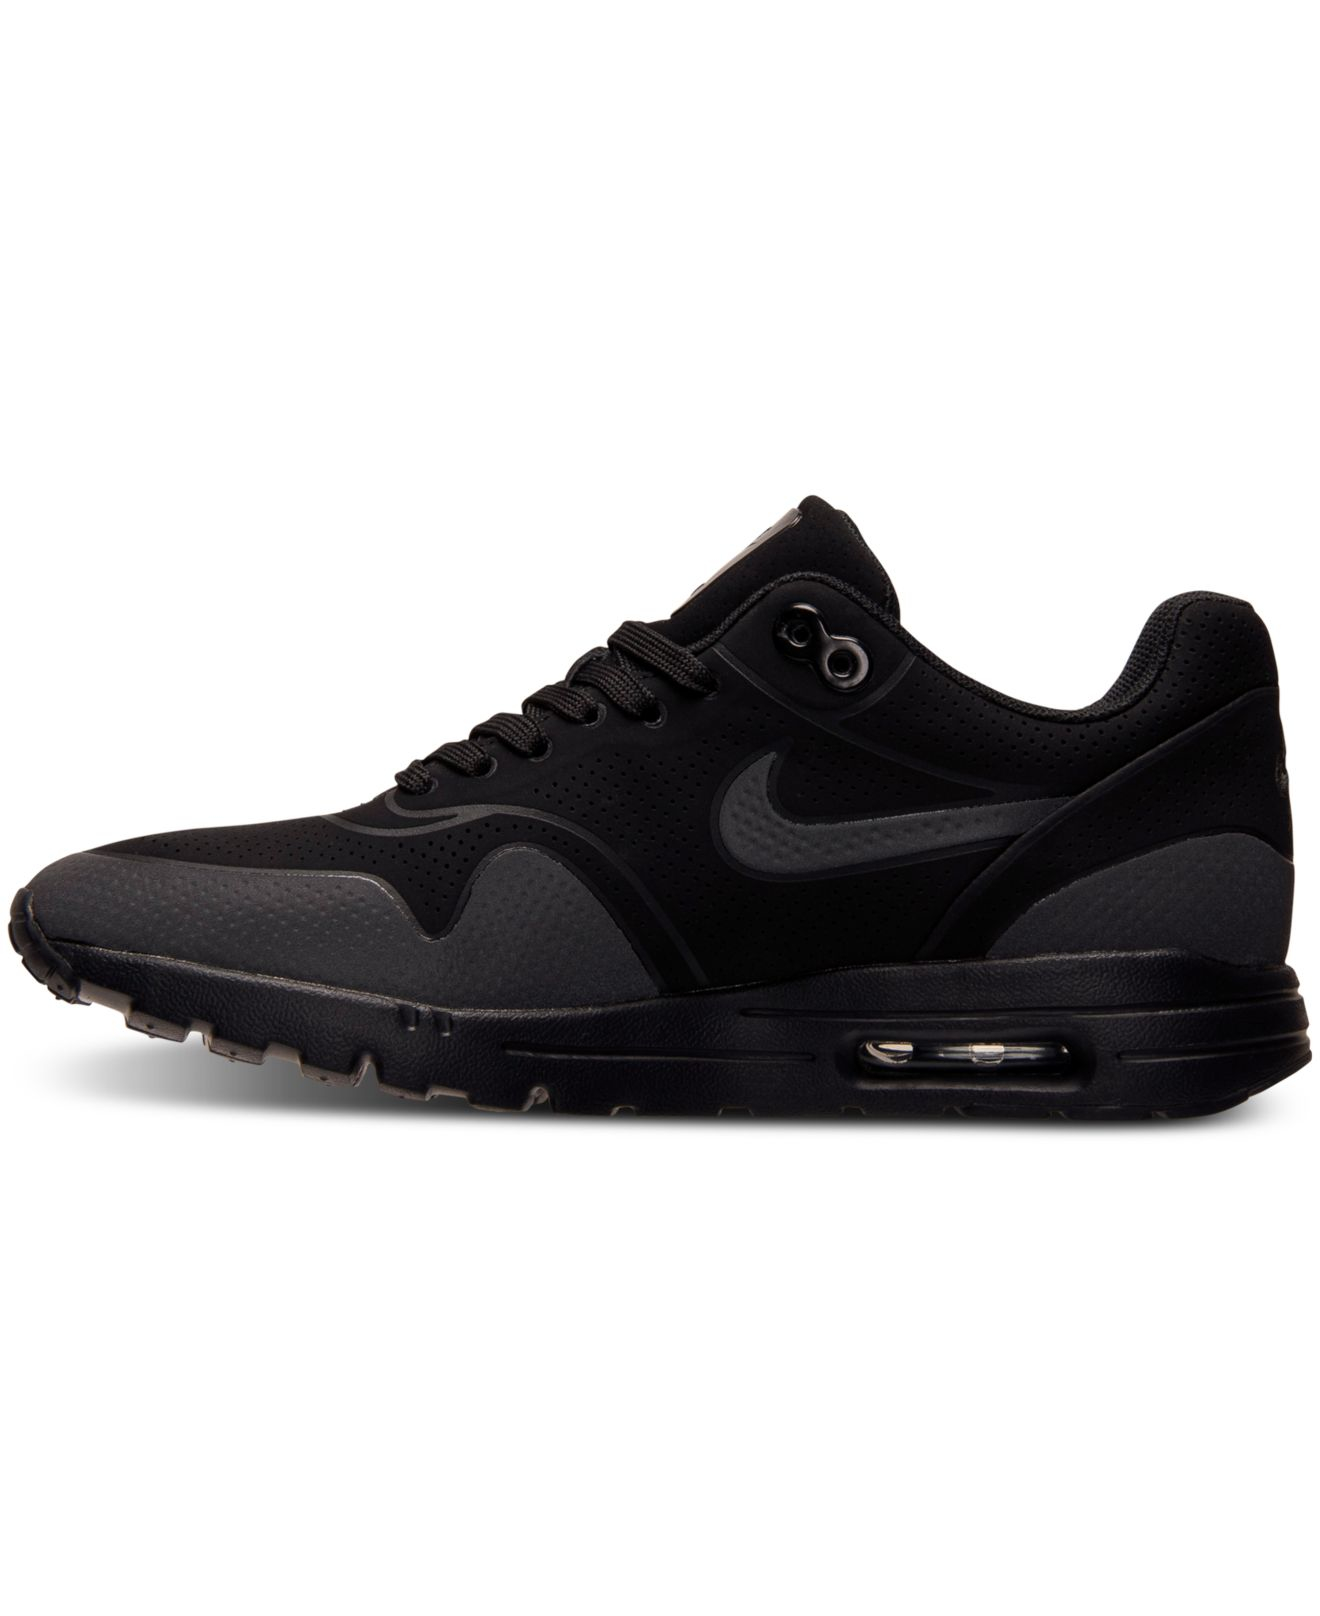 Mujeres Nike Air Max 1 Lyst Ultra Ultra Lyst Moire Running Zapatillas De e8059b